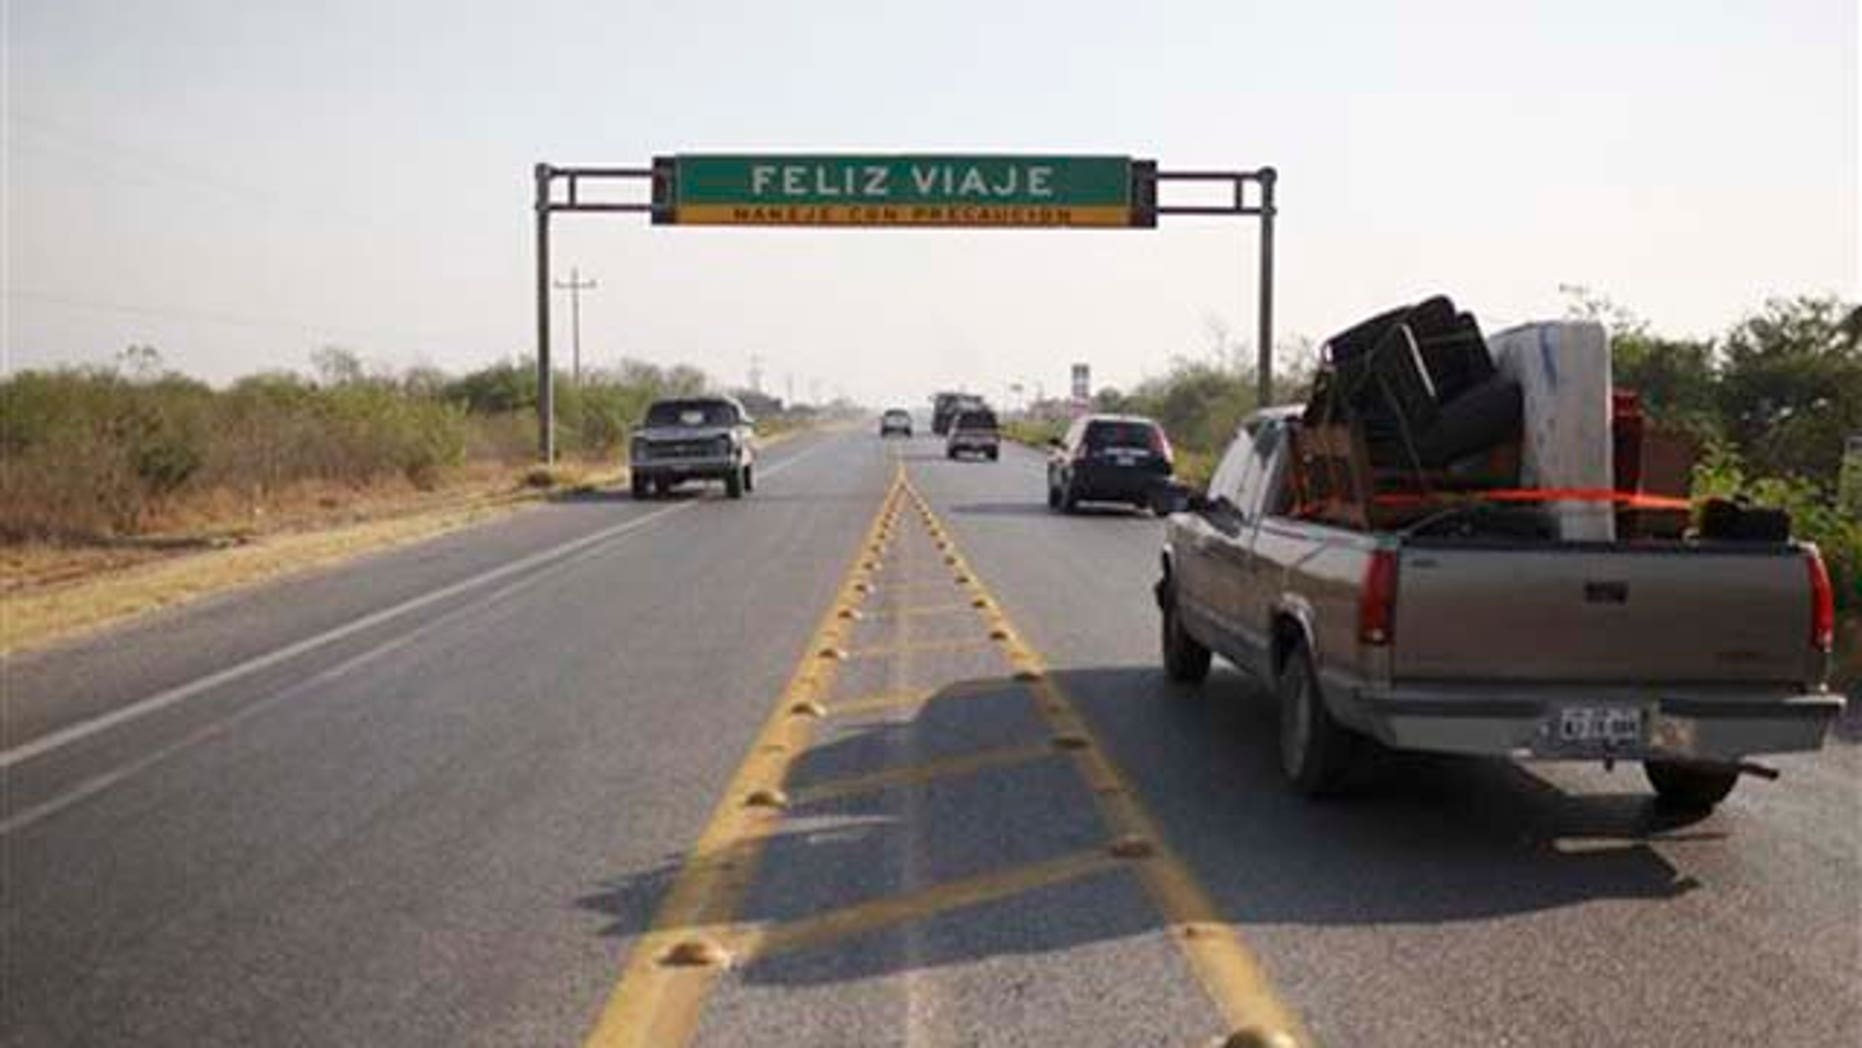 """Vehicles drive past a road sign that reads in Spanish """"Have a nice trip"""" at a highway between Ciudad Victoria and San Fernando, Tamaulipas State, Mexico, Wednesday, April 27, 2011. Security forces have unearthed six more bodies in Tamaulipas, a northeastern Mexican border state, where a drug gang is believed to be kidnapping passengers from buses and hiding their victims in secret graves, authorities said Tuesday. (AP Photo/Alexandre Meneghini)"""